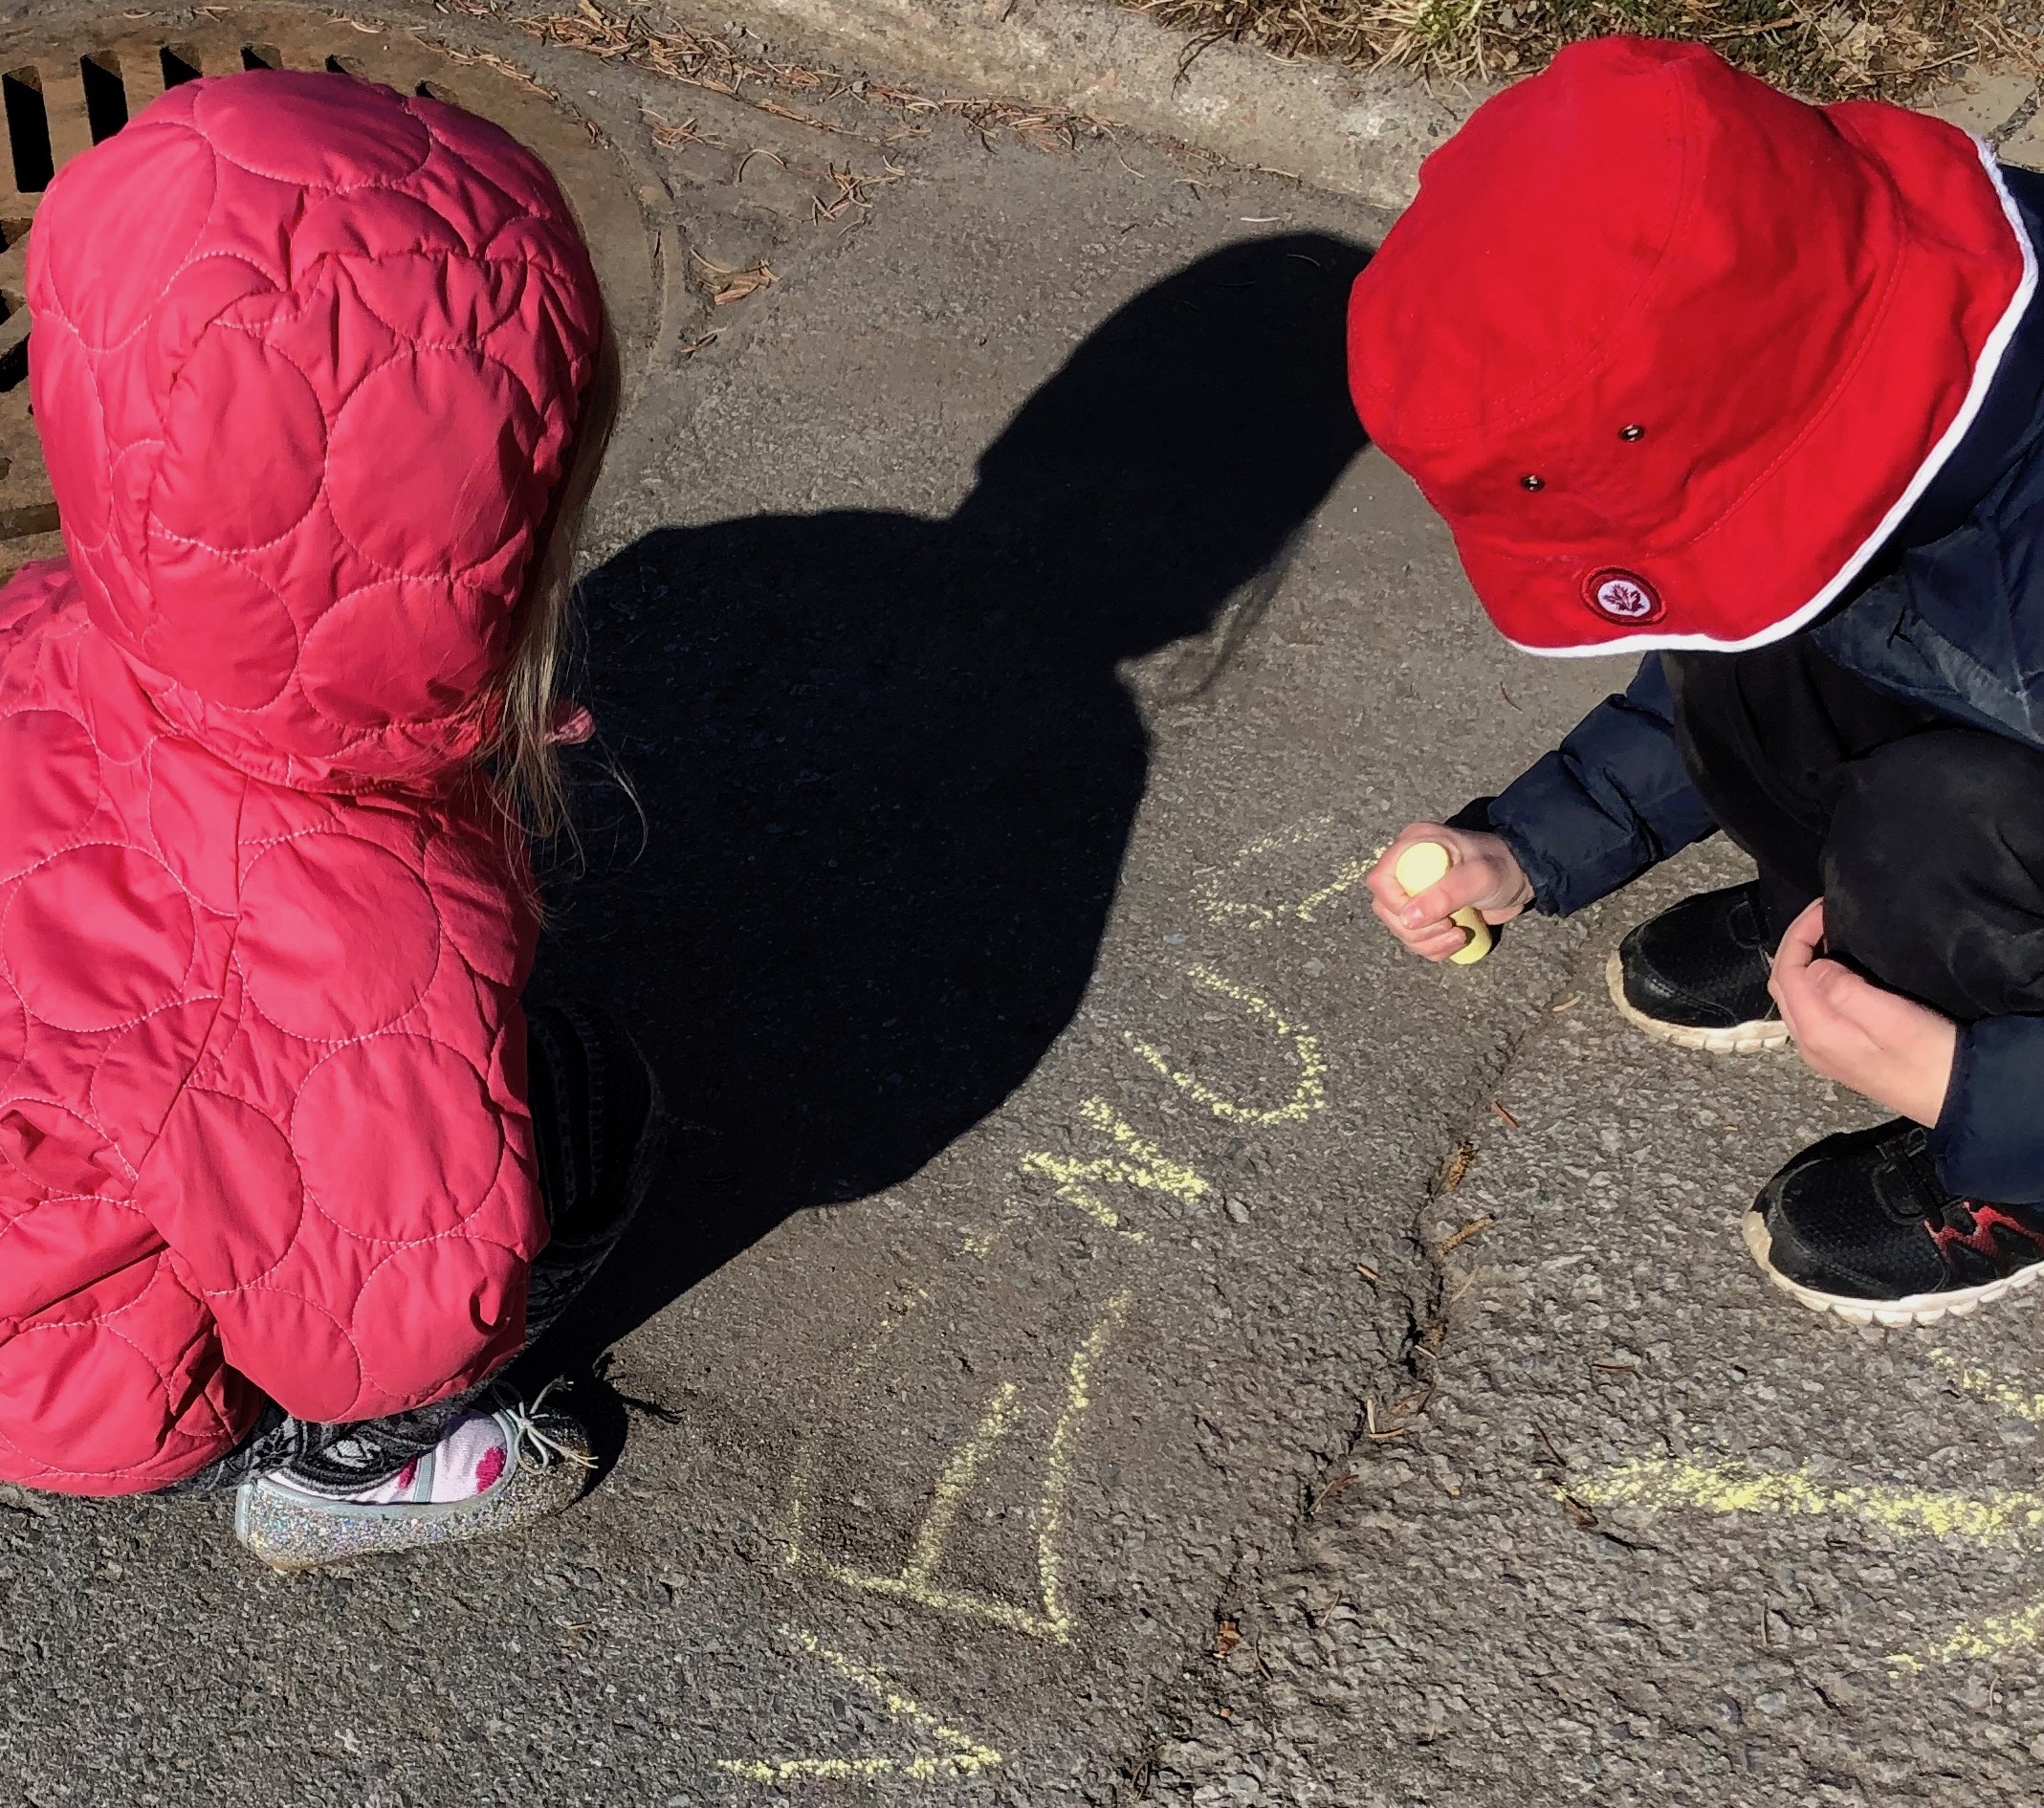 A young girl and a young boy look at the ground as the boy writes Venus in chalk. The girl's shadow is seen above Venus